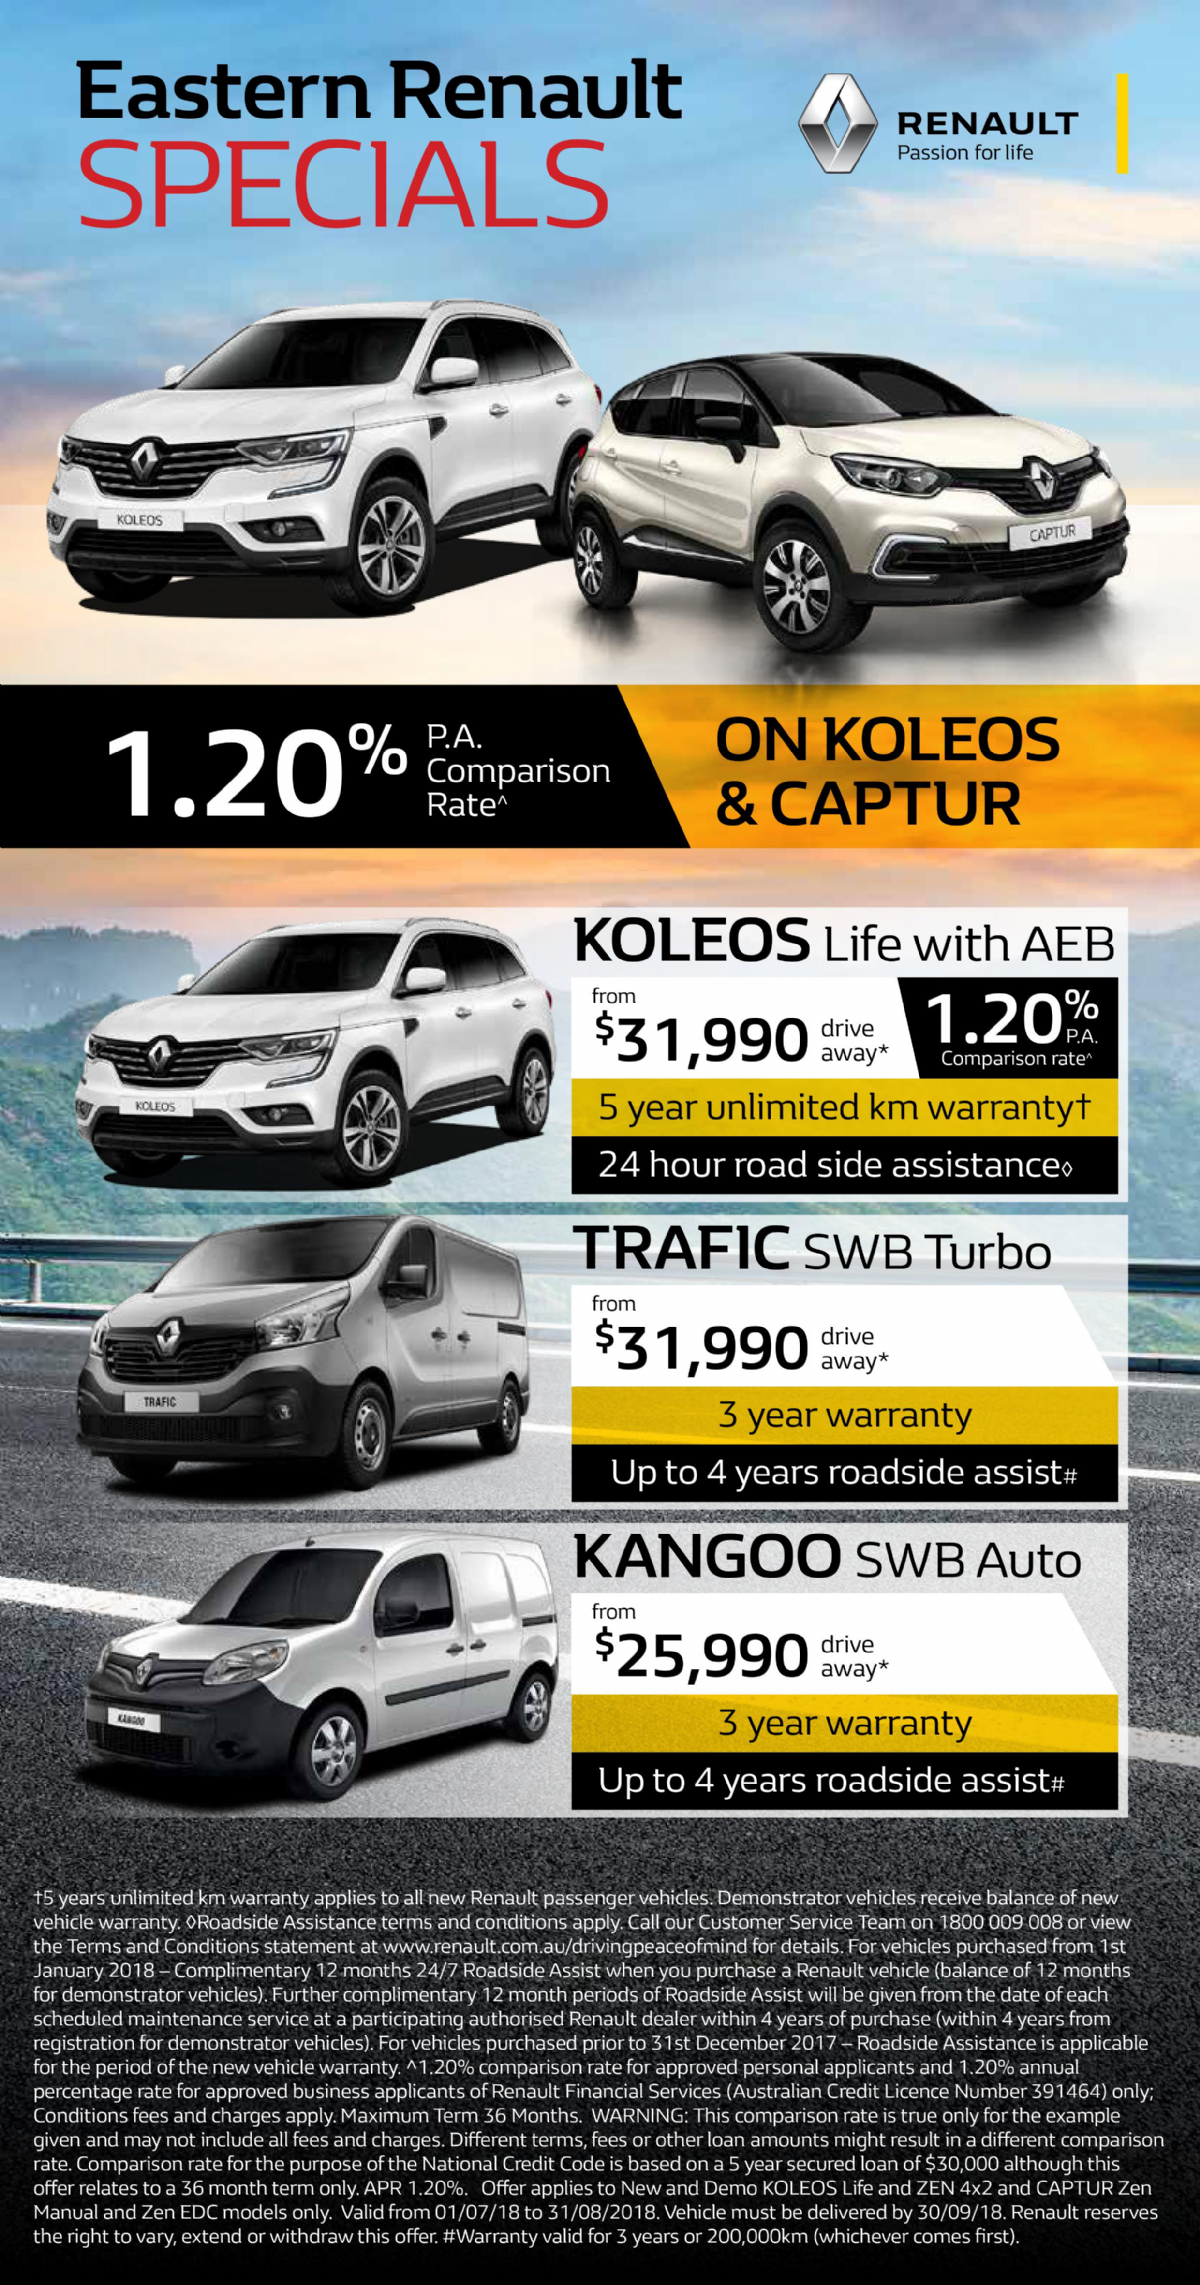 Eastern Renault Specials - Koleos & Captur